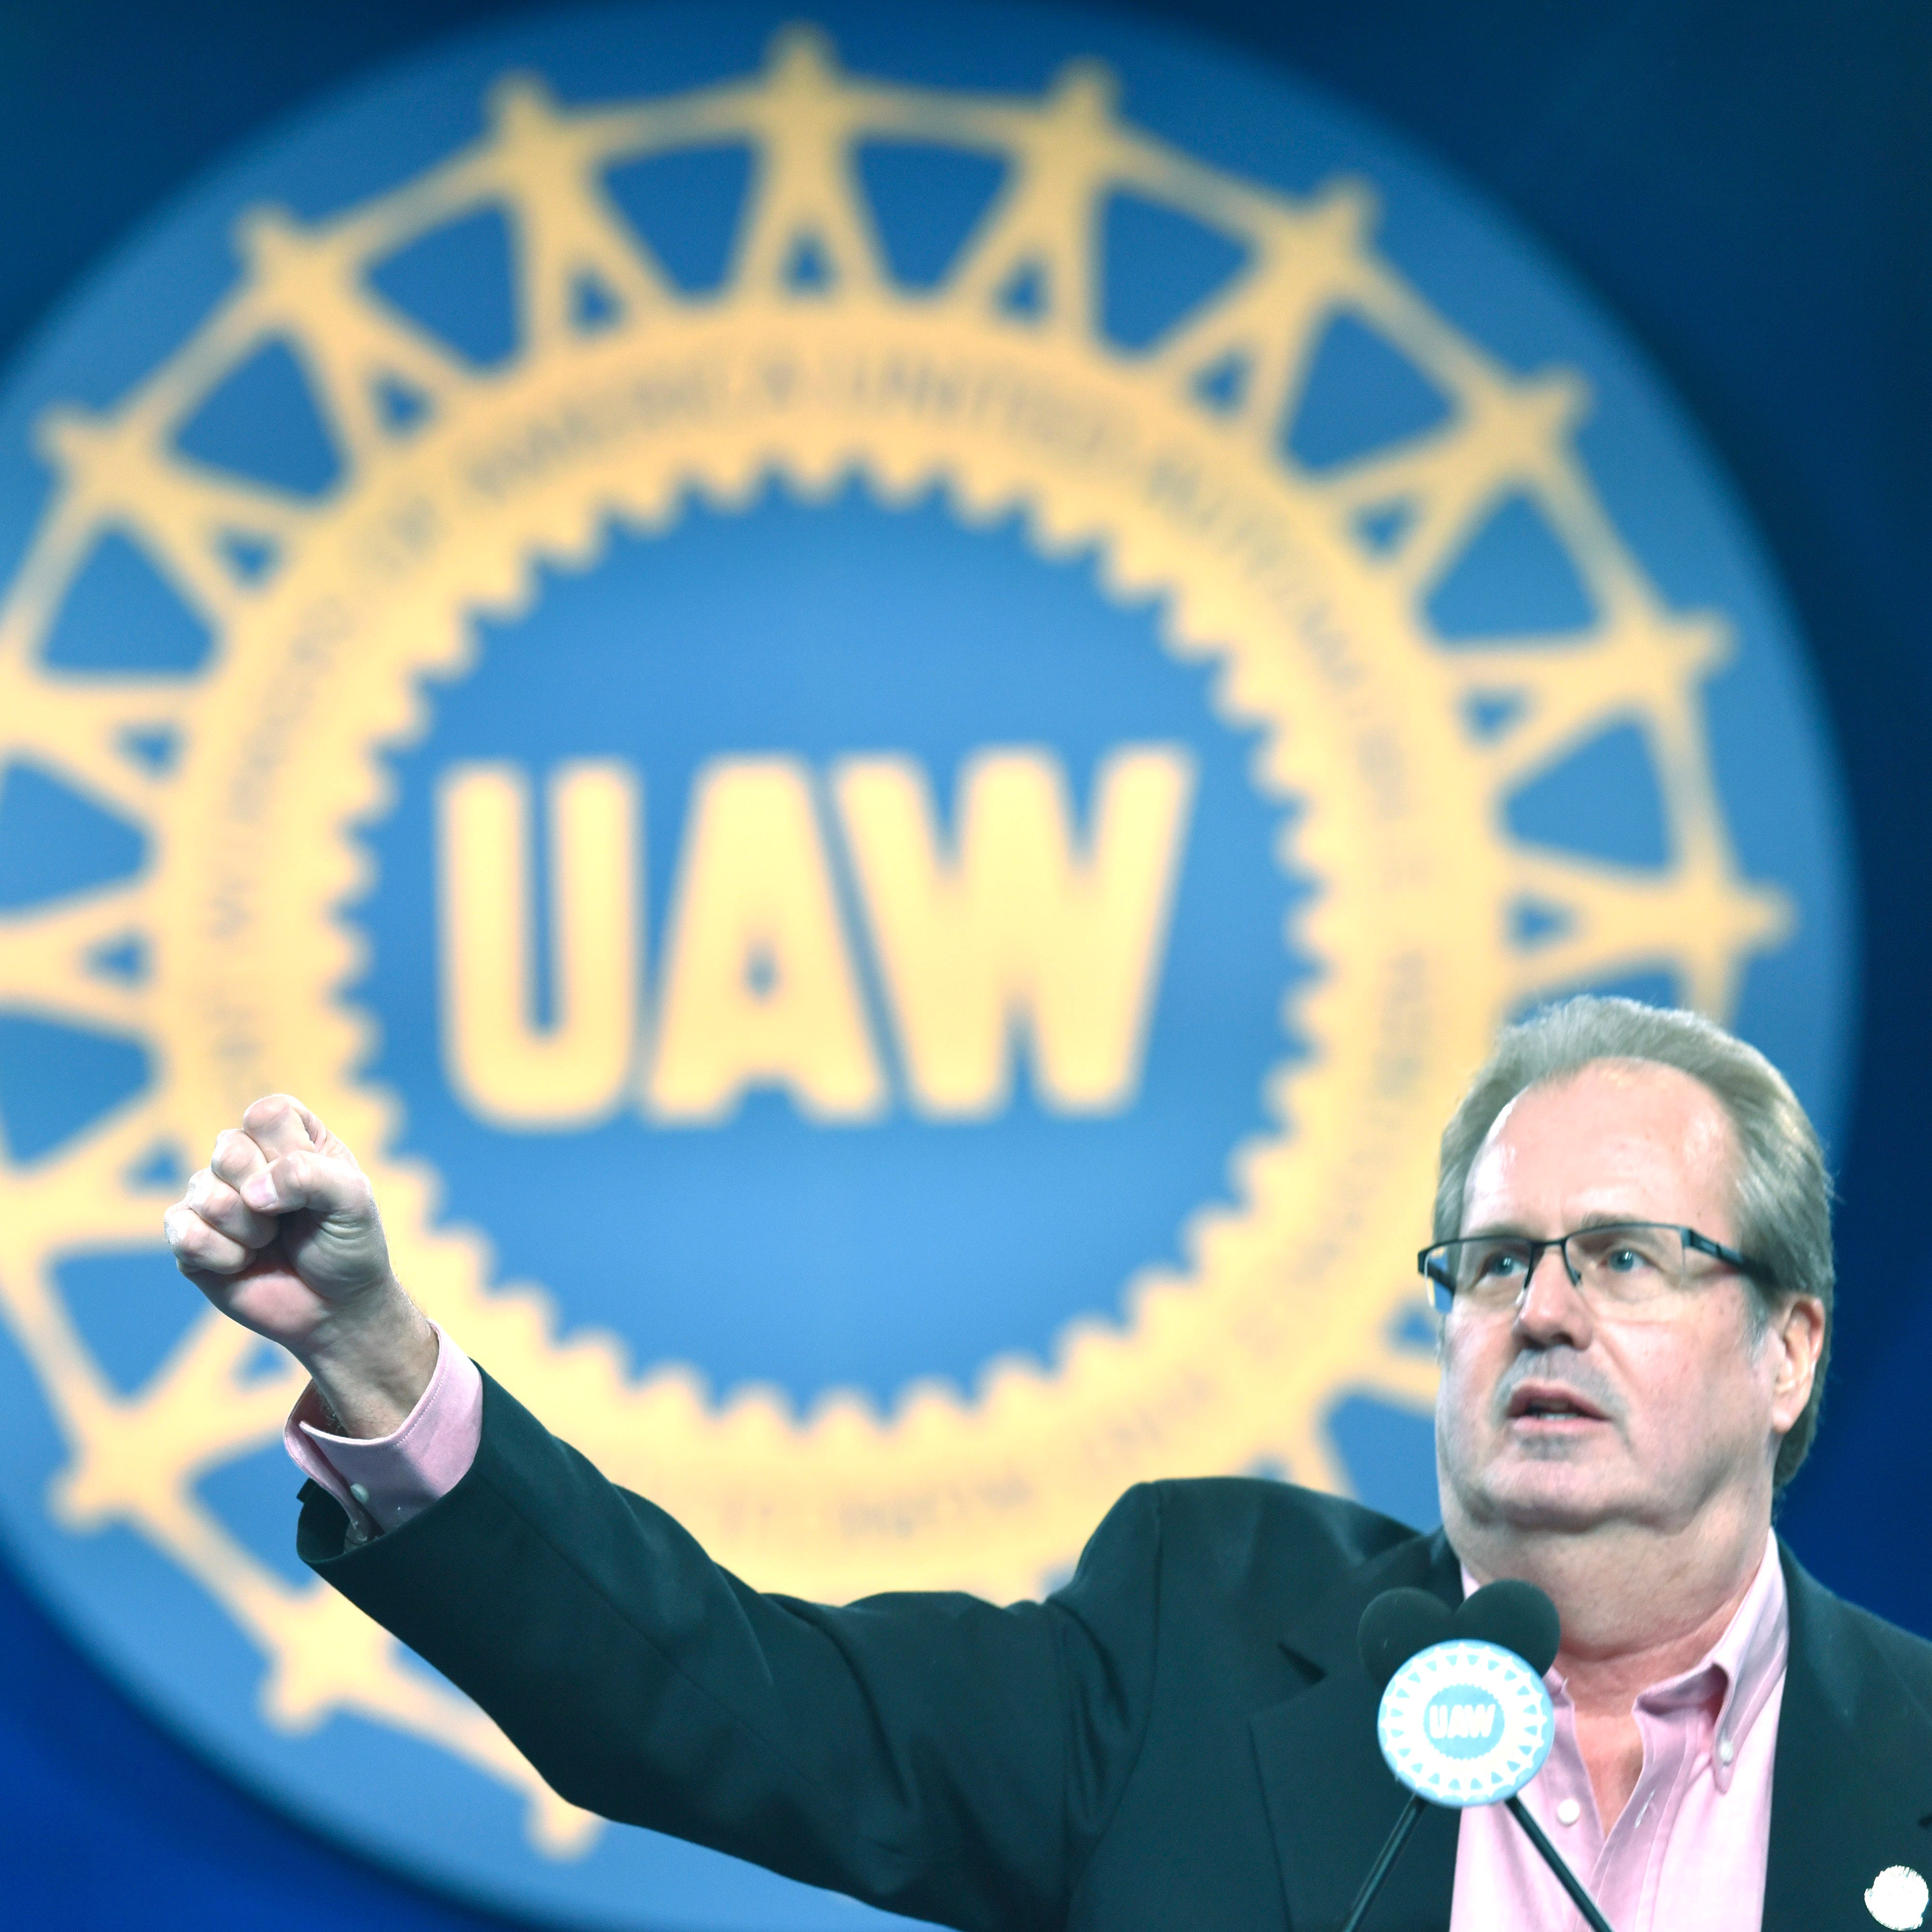 UAW membership dropped by 35,000 in 2018